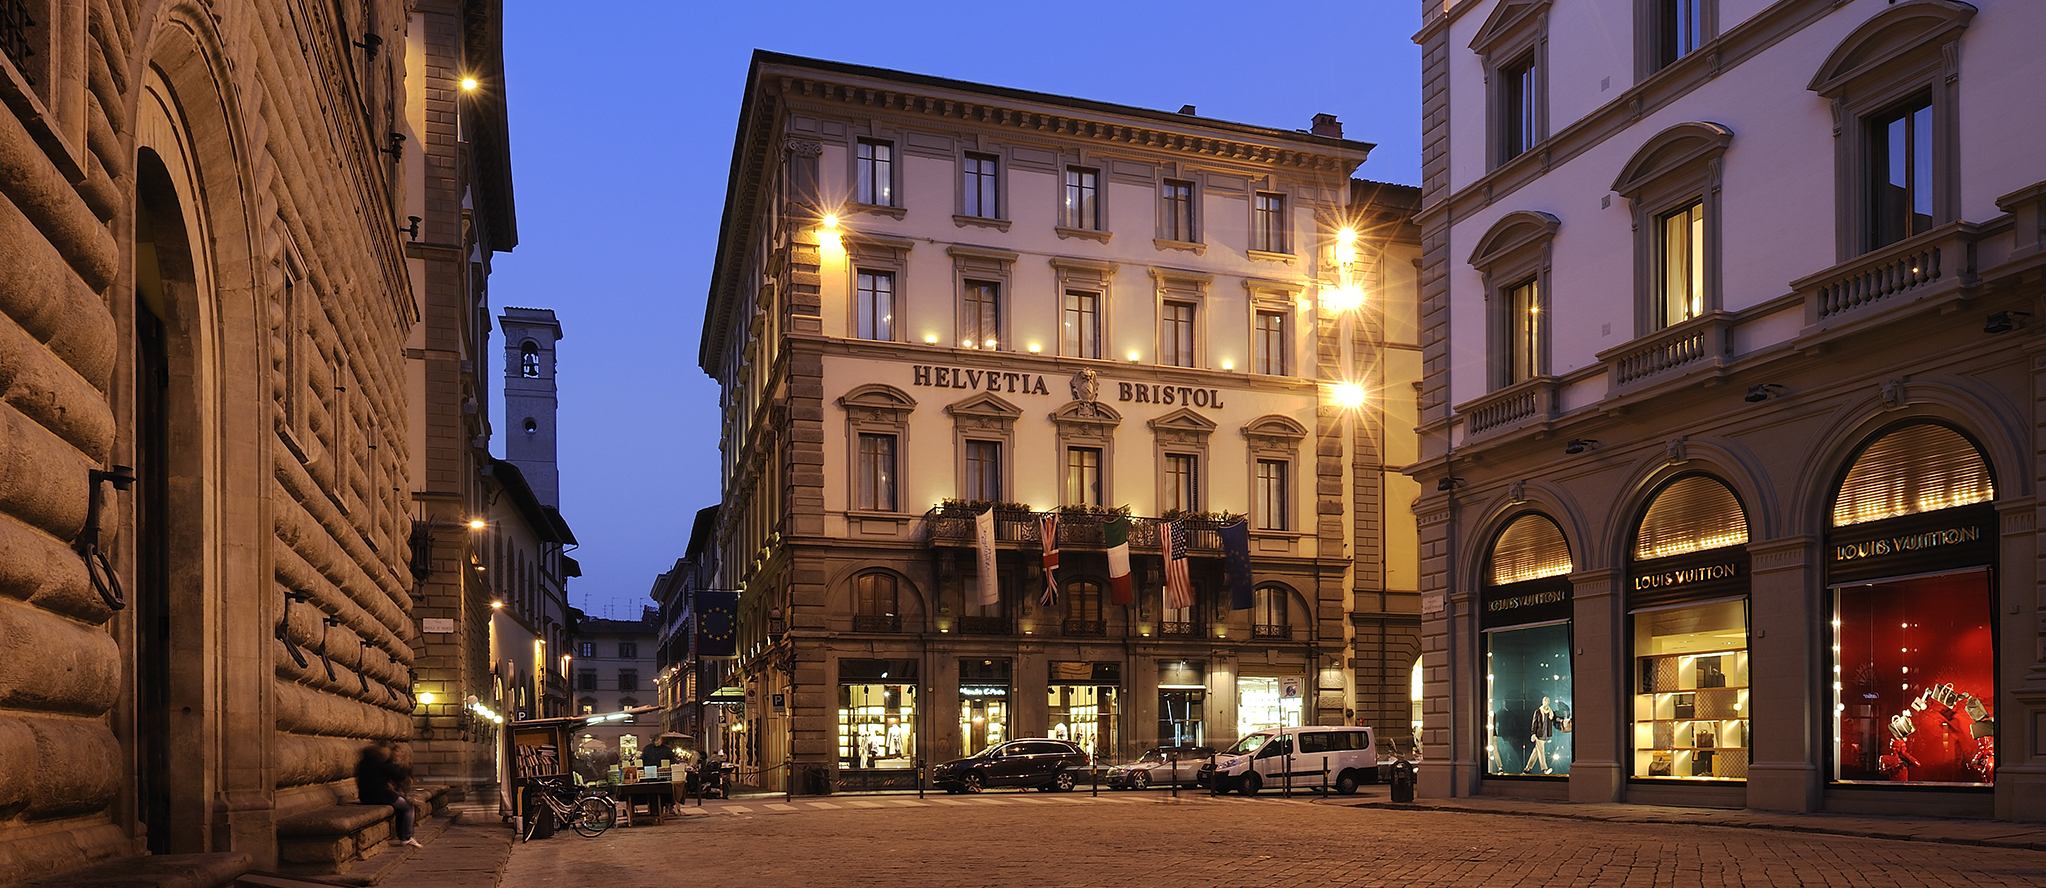 Hotel Helvetia & Bristol ***** , Florence / Italy